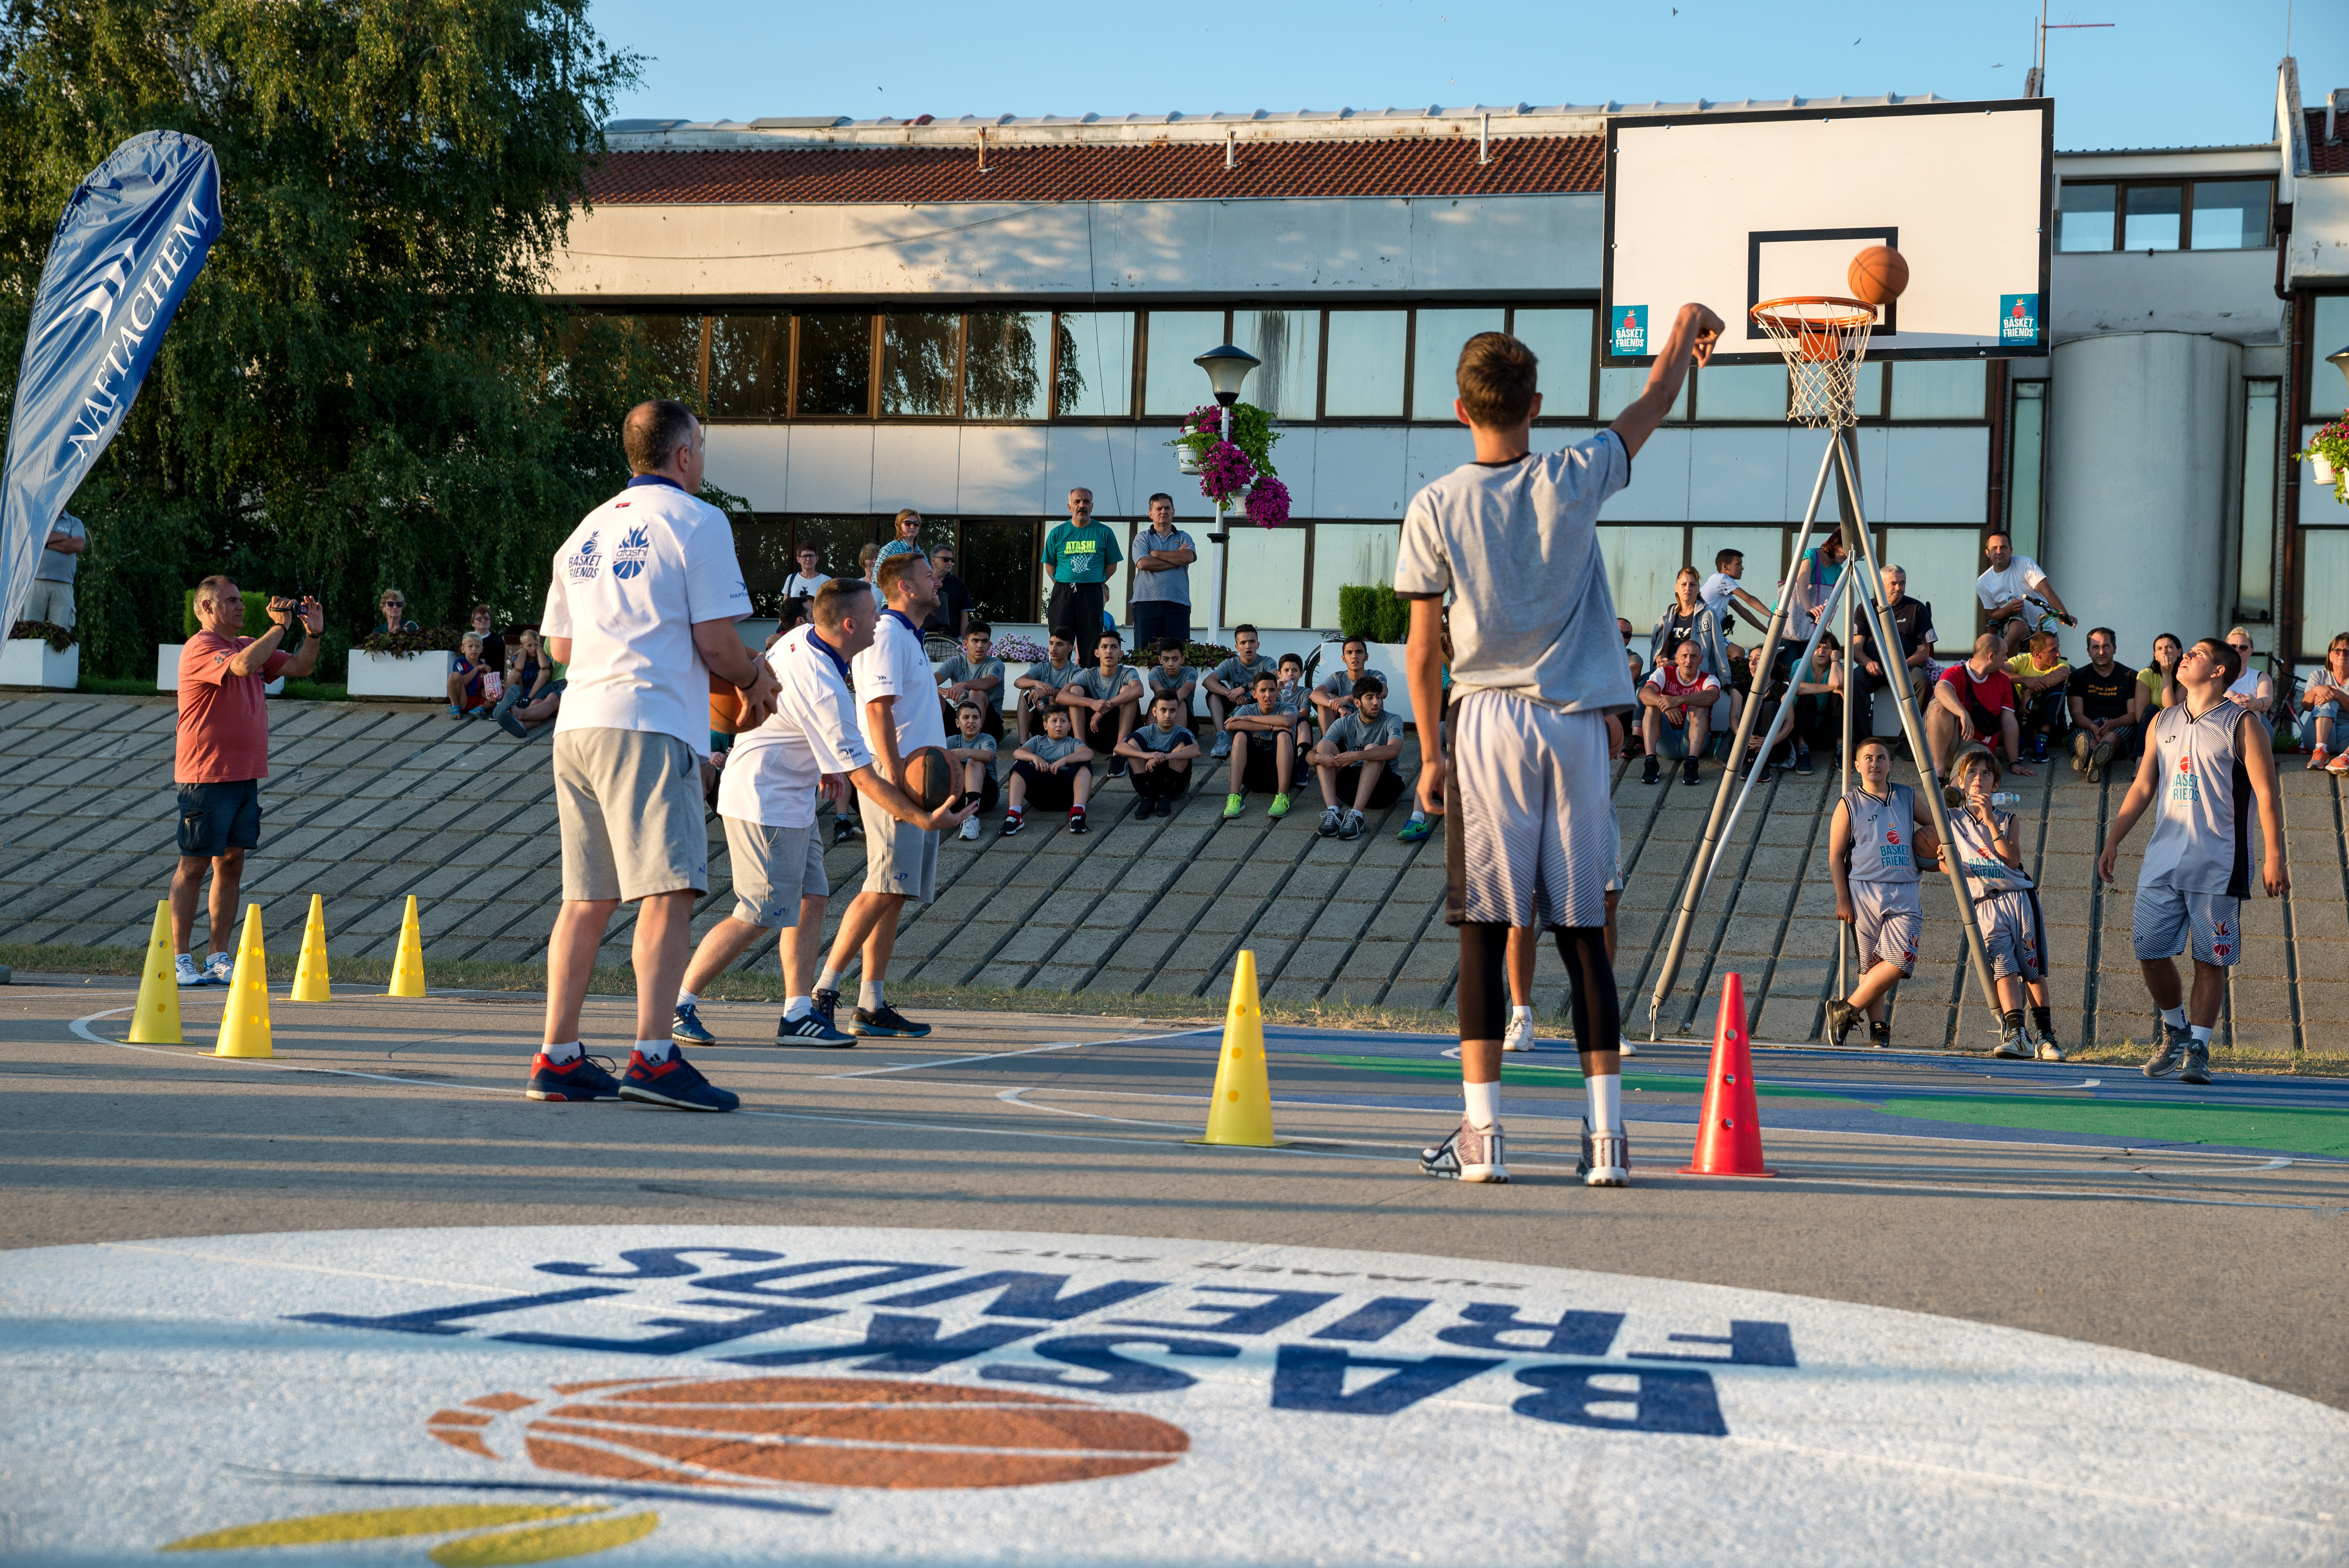 Basketfriends 2017. - 3 points competition